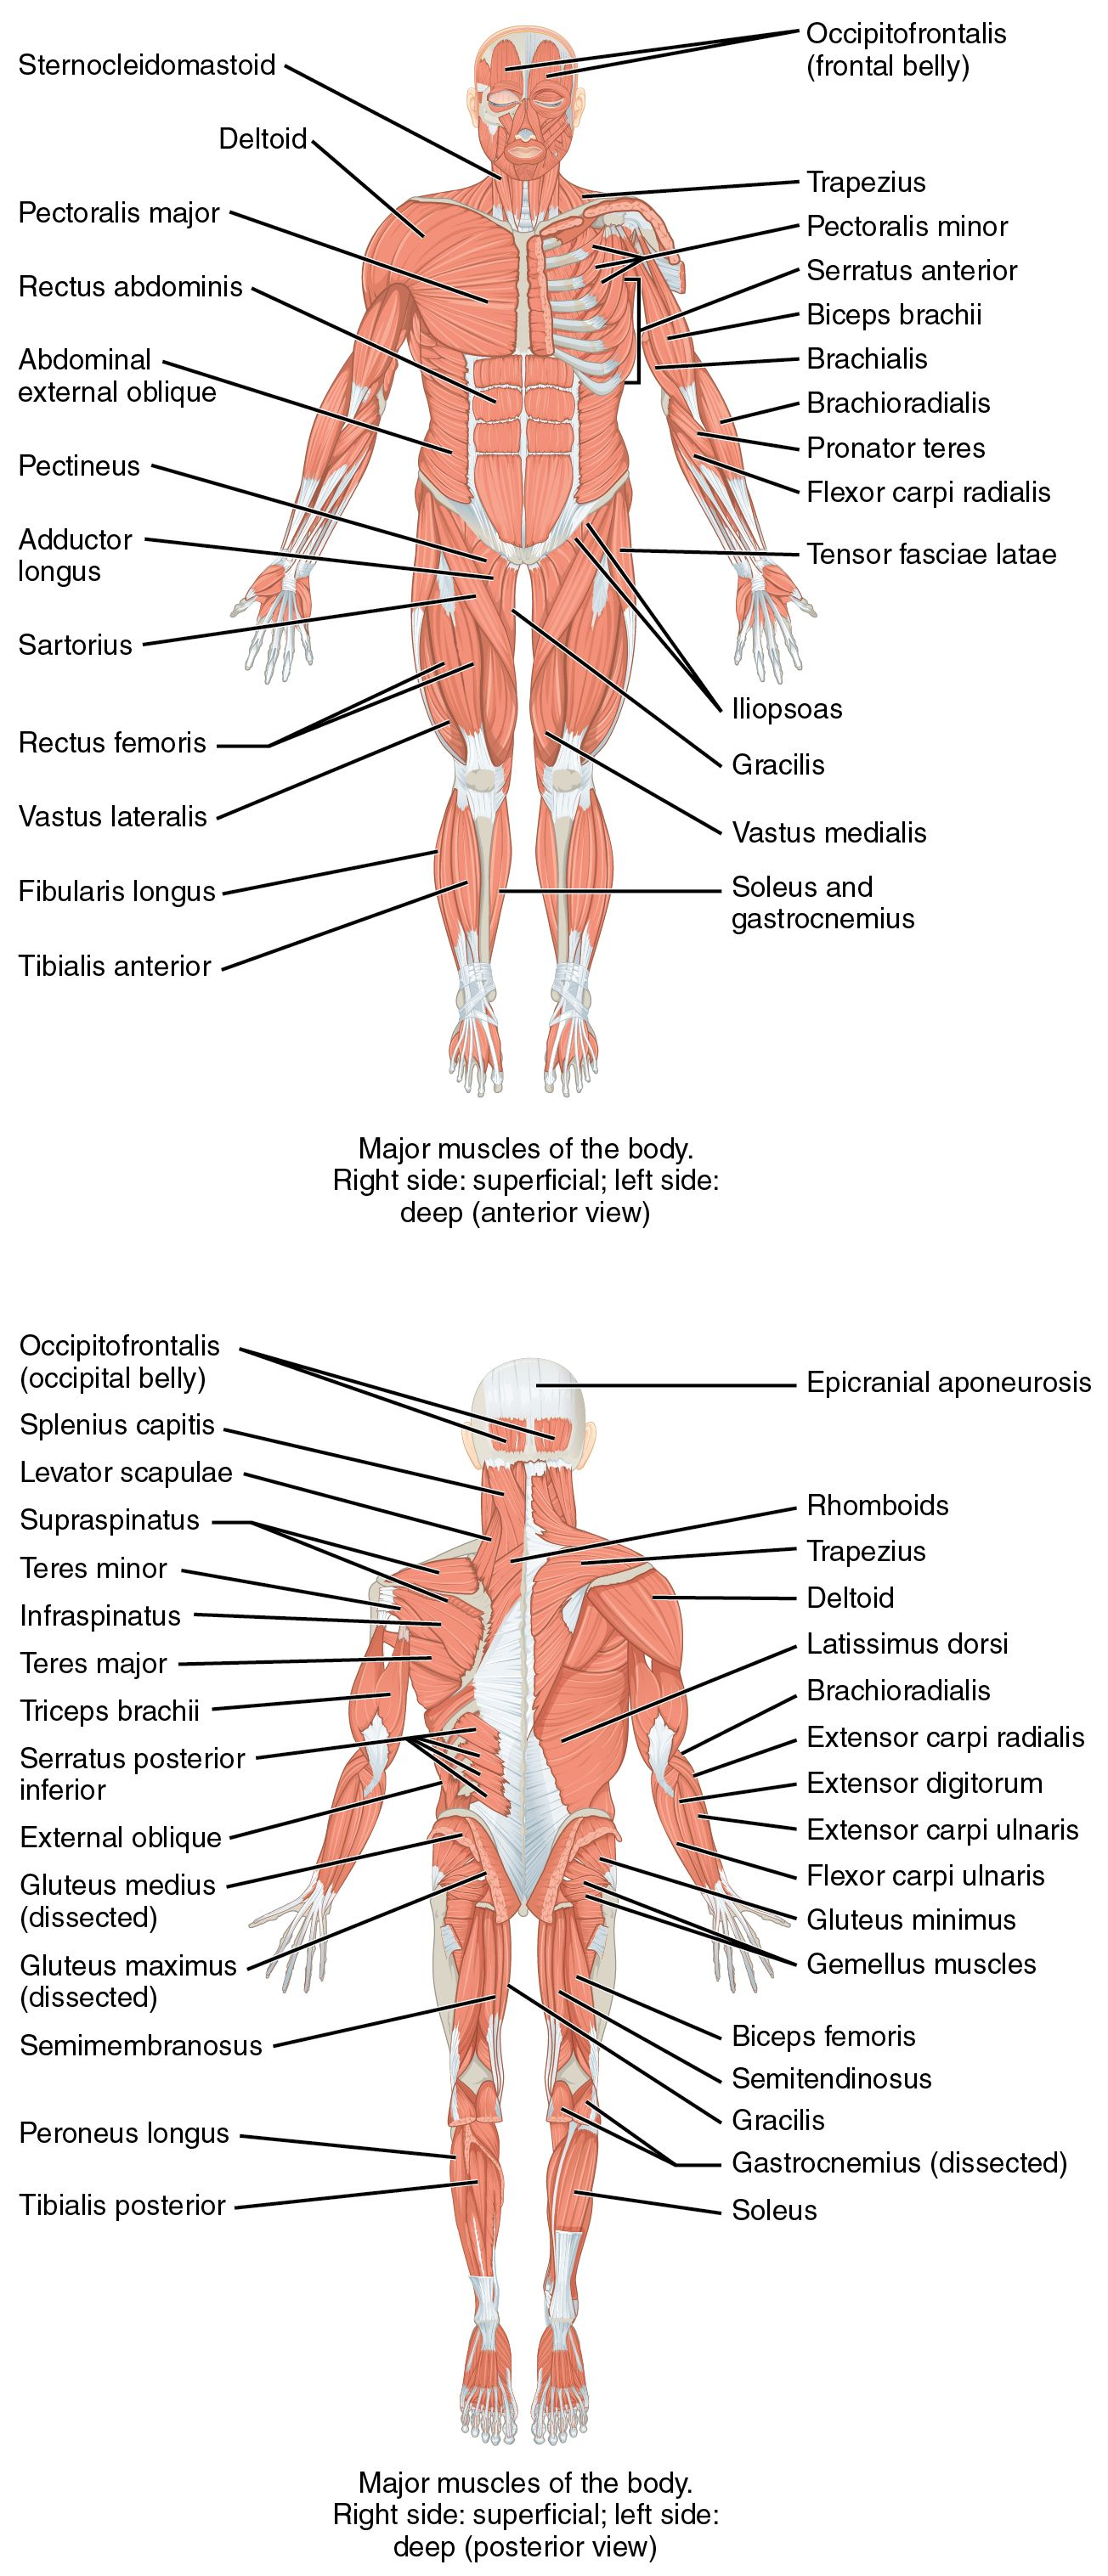 Human Muscles Labeled Koibana Info Human Body Muscles Skeletal Muscle Anatomy Human Muscular System